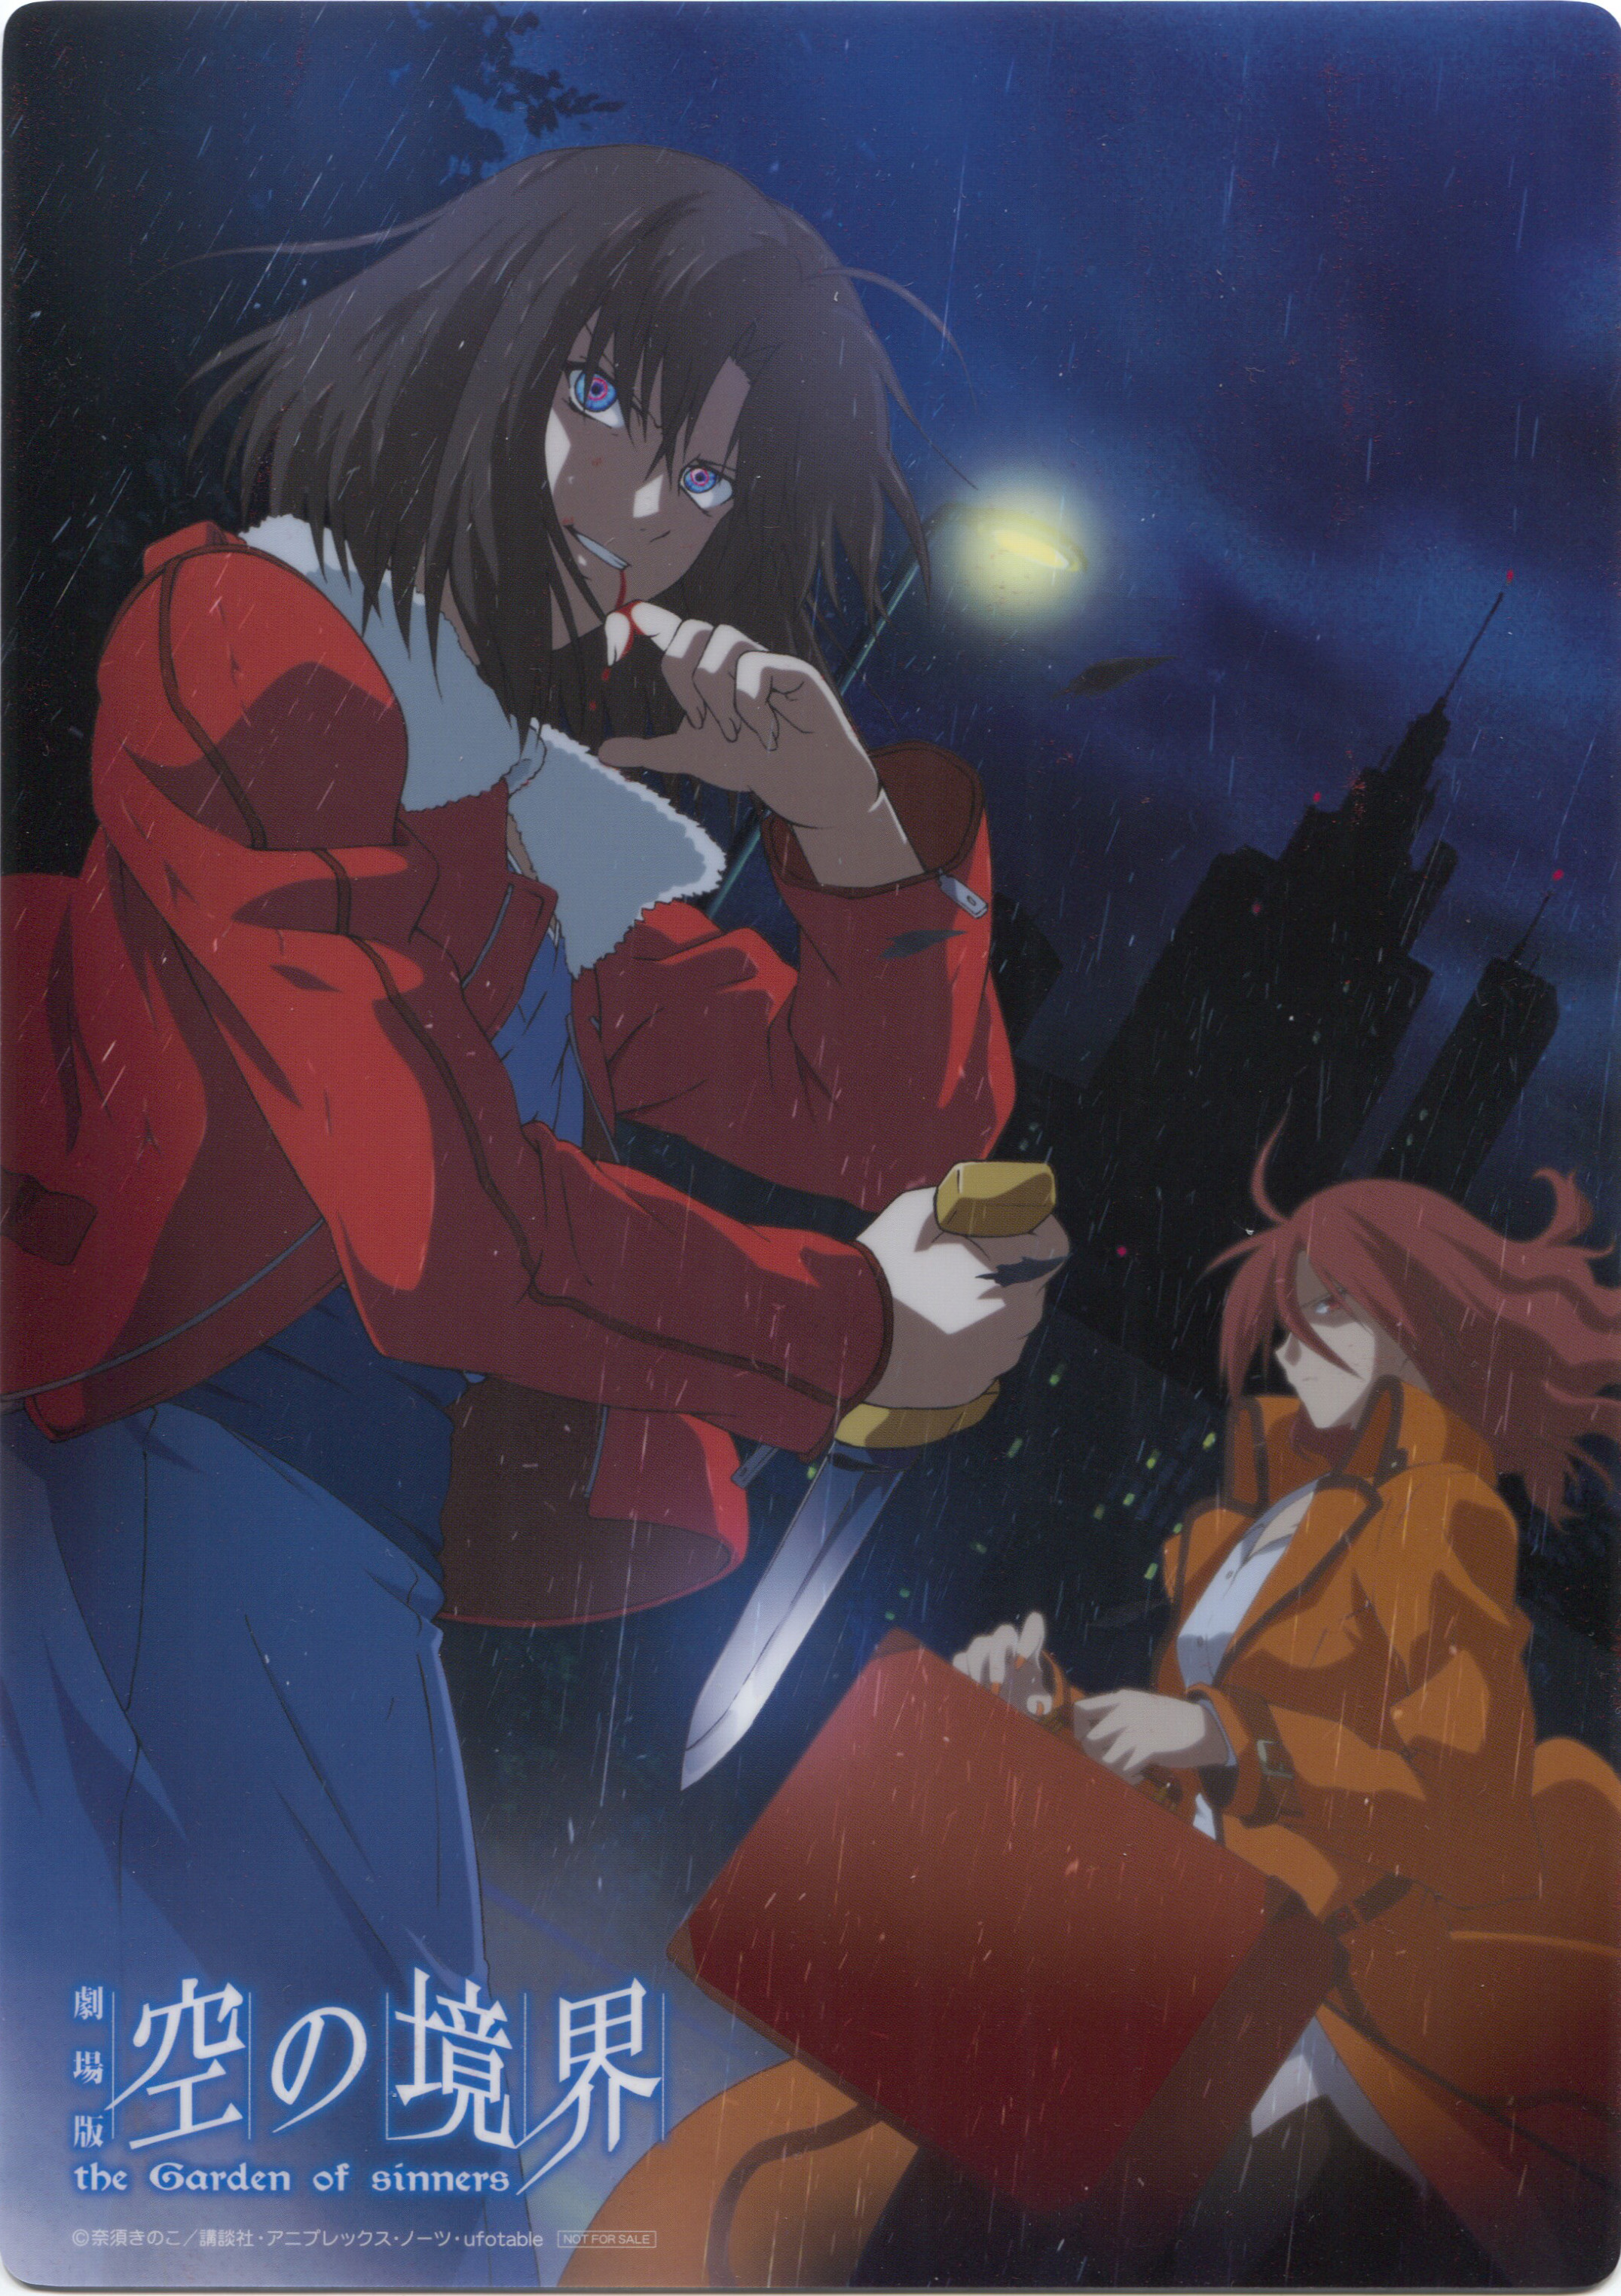 Kara no kyoukai the garden of sinners page 4 of 35 - Kara no kyoukai the garden of sinners ...